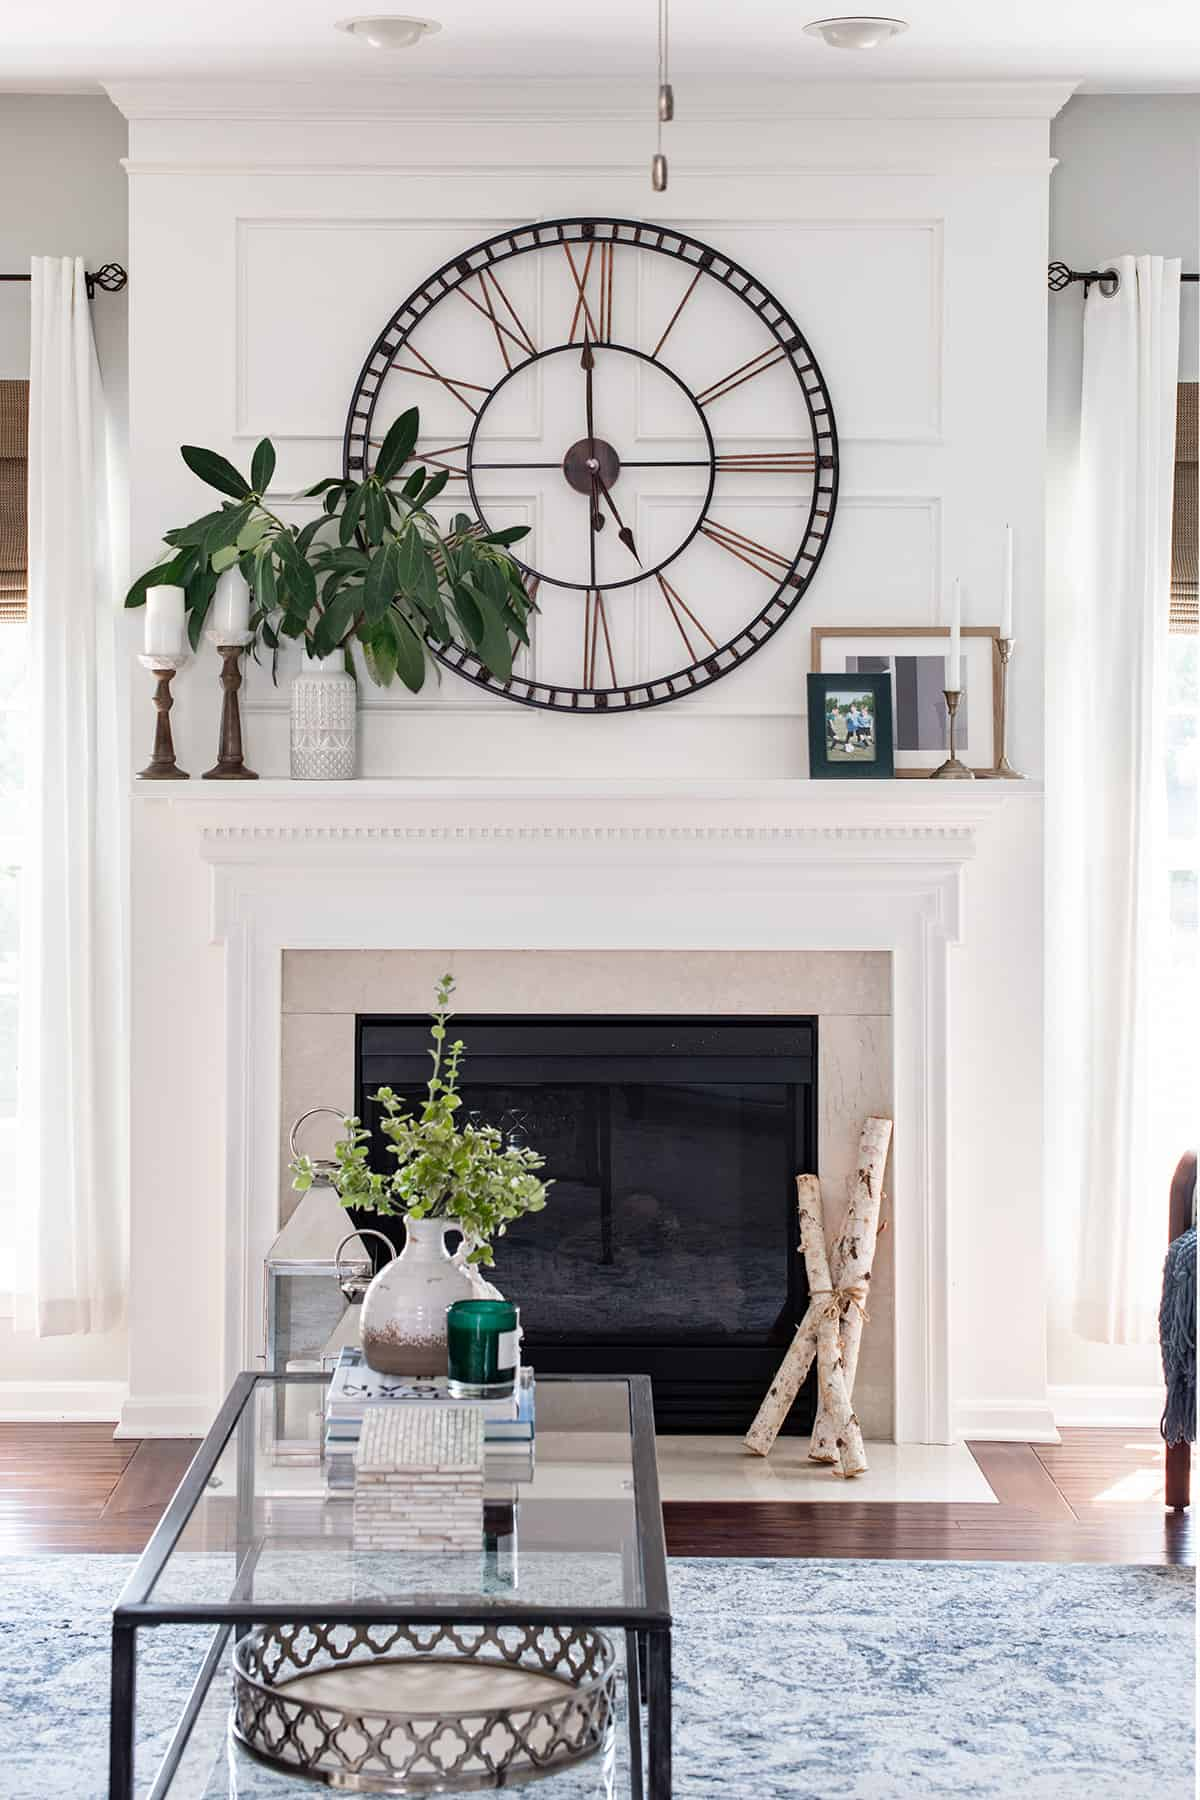 Fireplace mantle picture frame trim decoration with oversized clock.